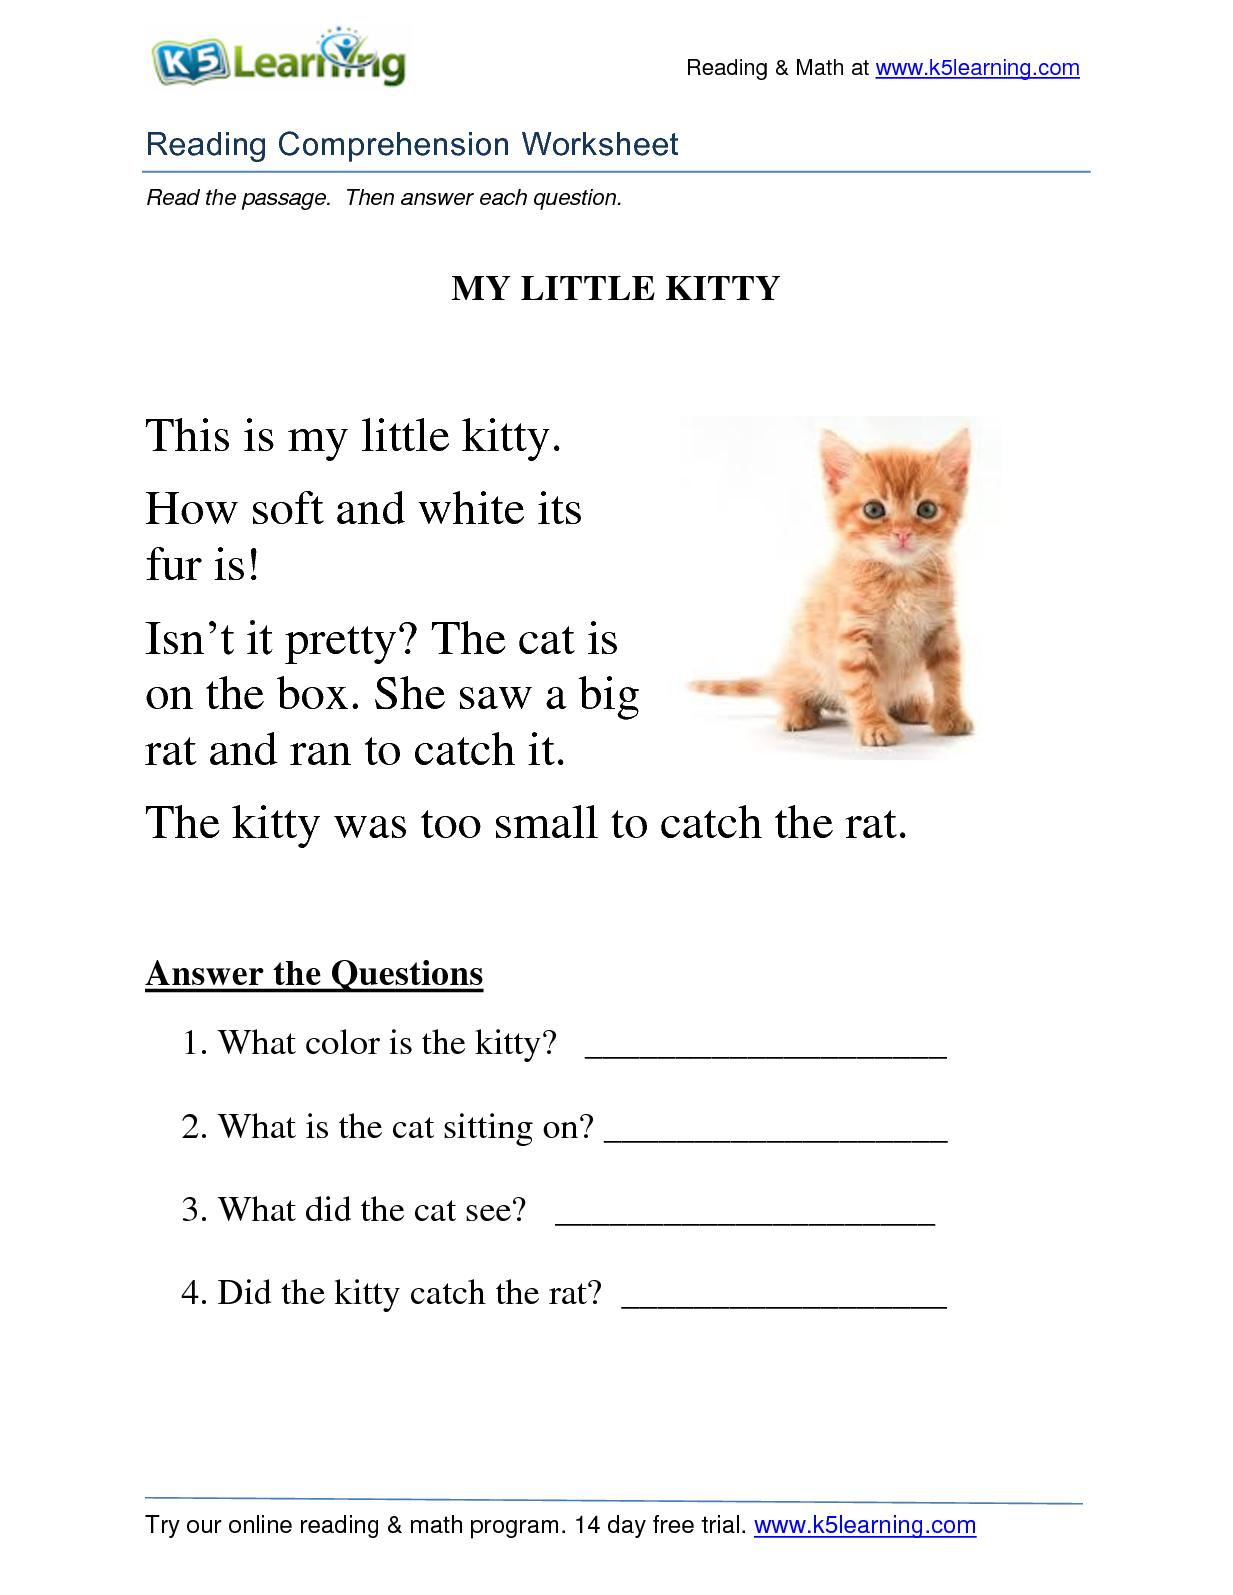 - Calaméo - Reading Comprehension Worksheet Grade 1 Kitty